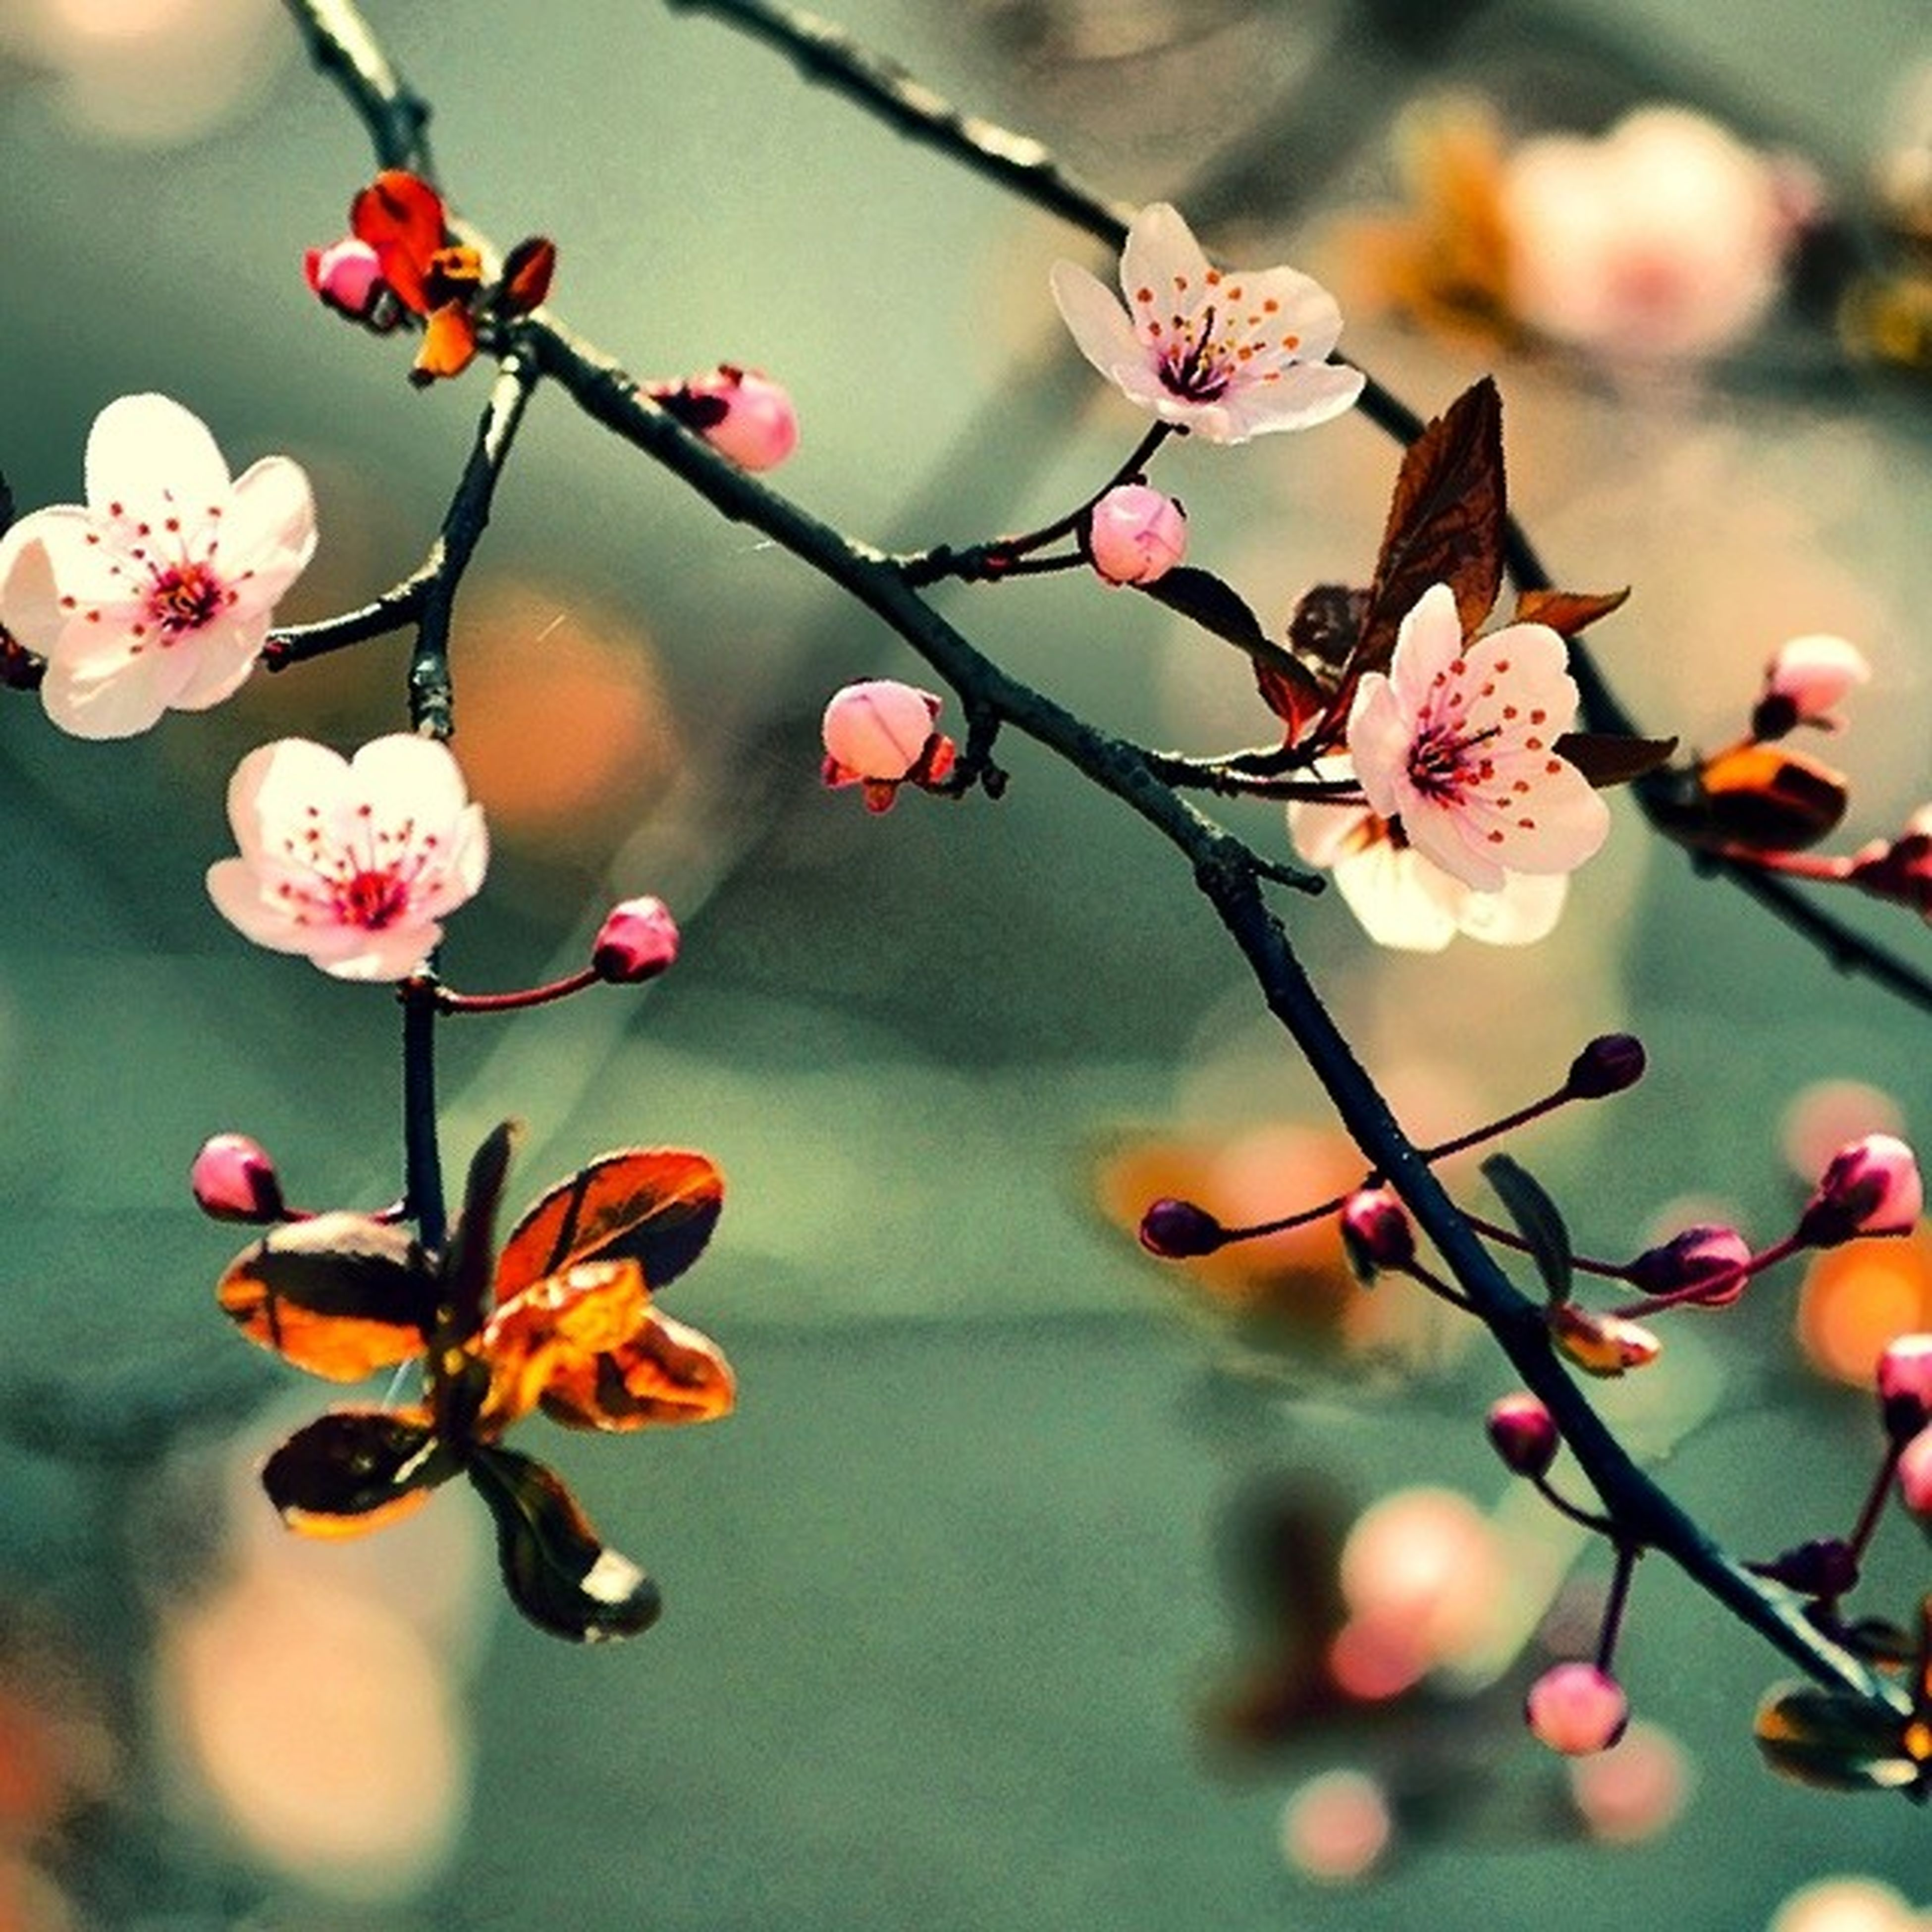 branch, focus on foreground, twig, close-up, freshness, flower, growth, hanging, nature, fruit, bud, fragility, red, selective focus, tree, stem, beauty in nature, plant, day, berry fruit